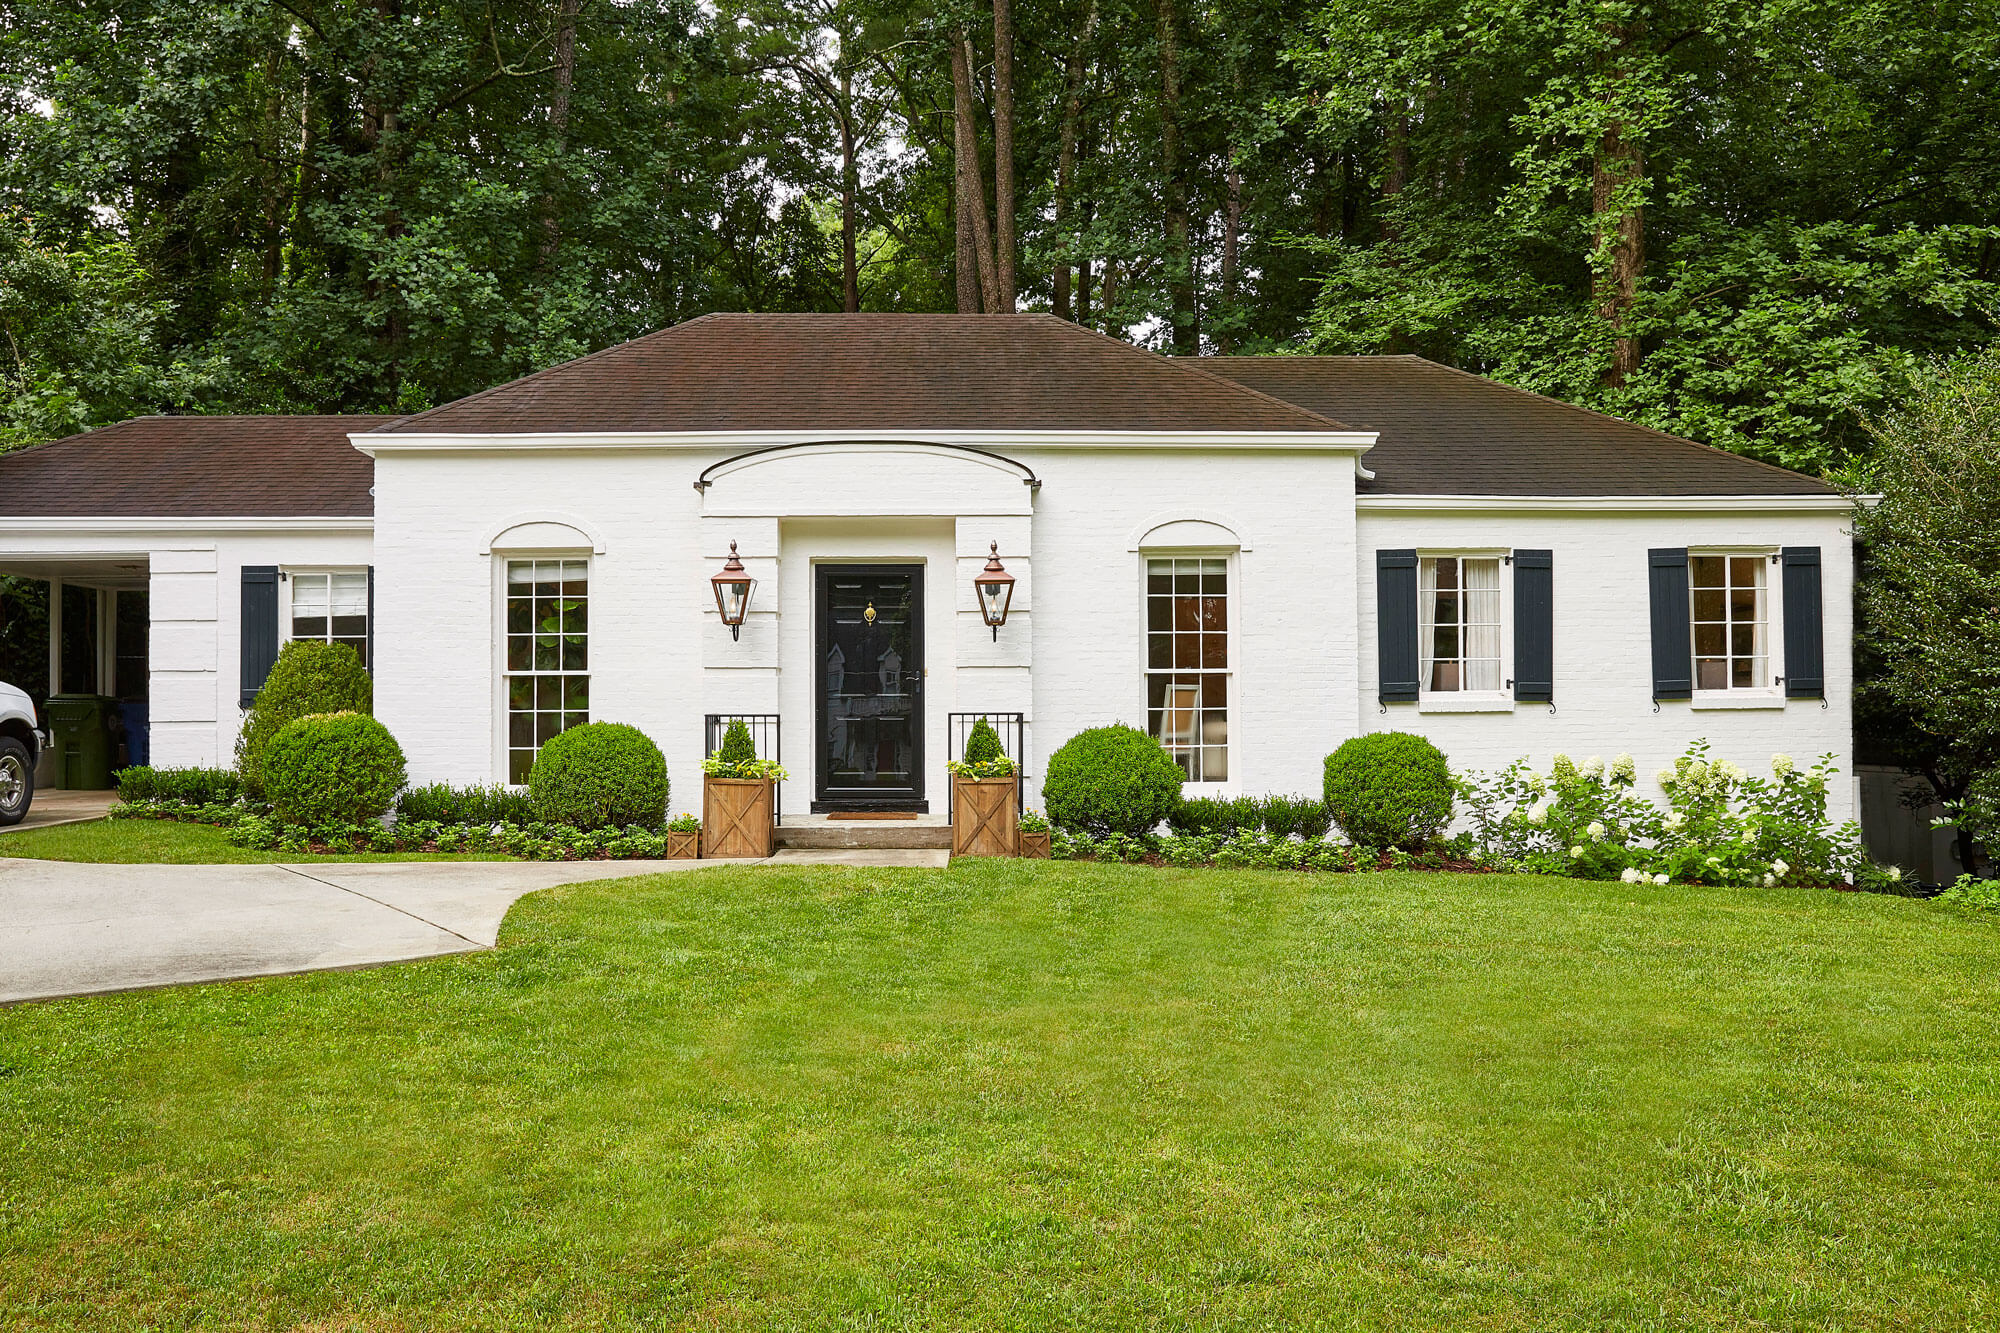 """White ranch-style house with Greek and Romanesque influence with a sloping roof. The door is painted in Farrow and Ball's """"Railings"""" shade."""